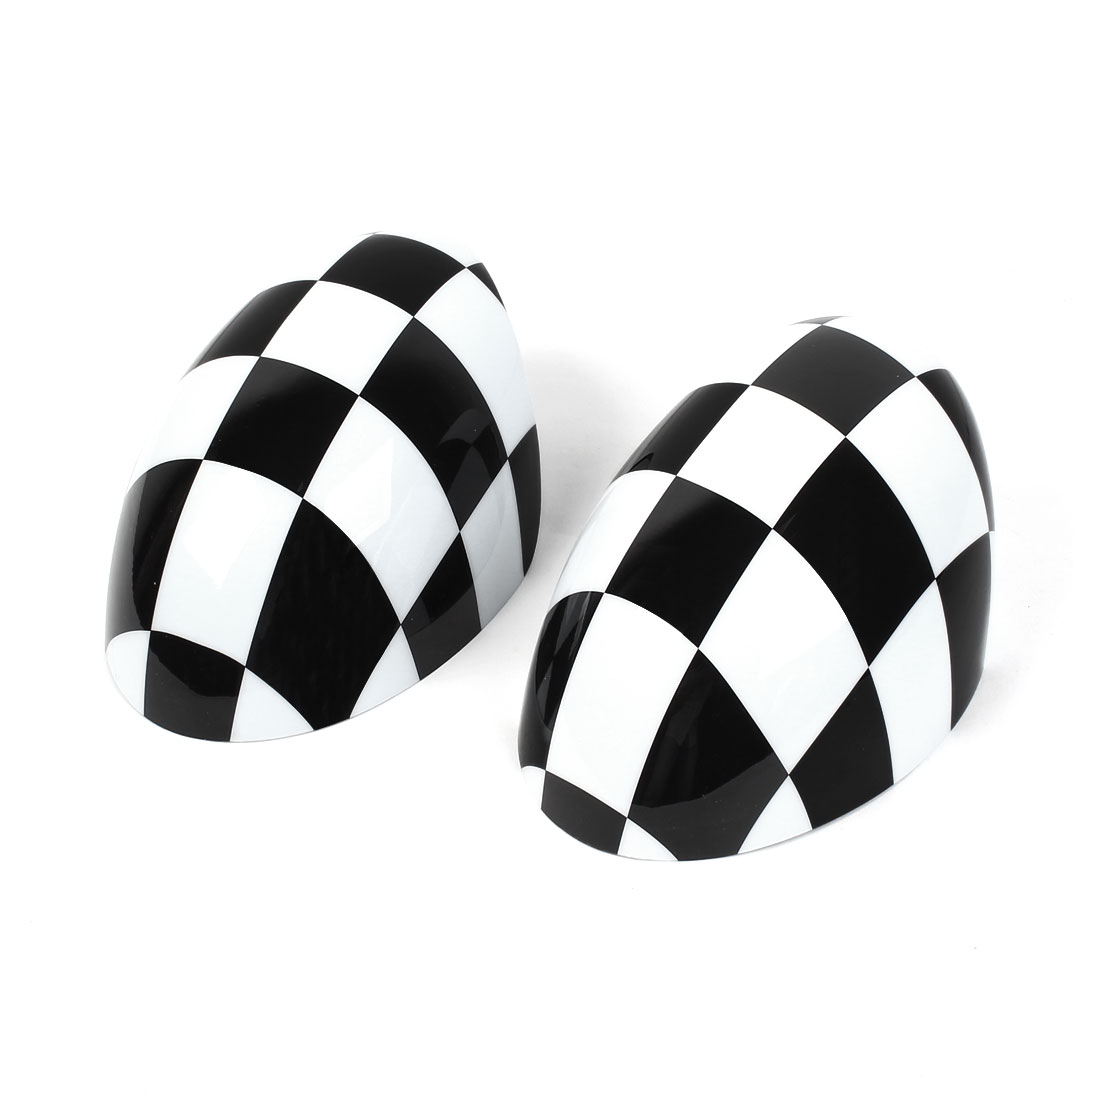 Pair Black White Checkered Side Rear View Mirror Caps Trim Cover for BMW MINI